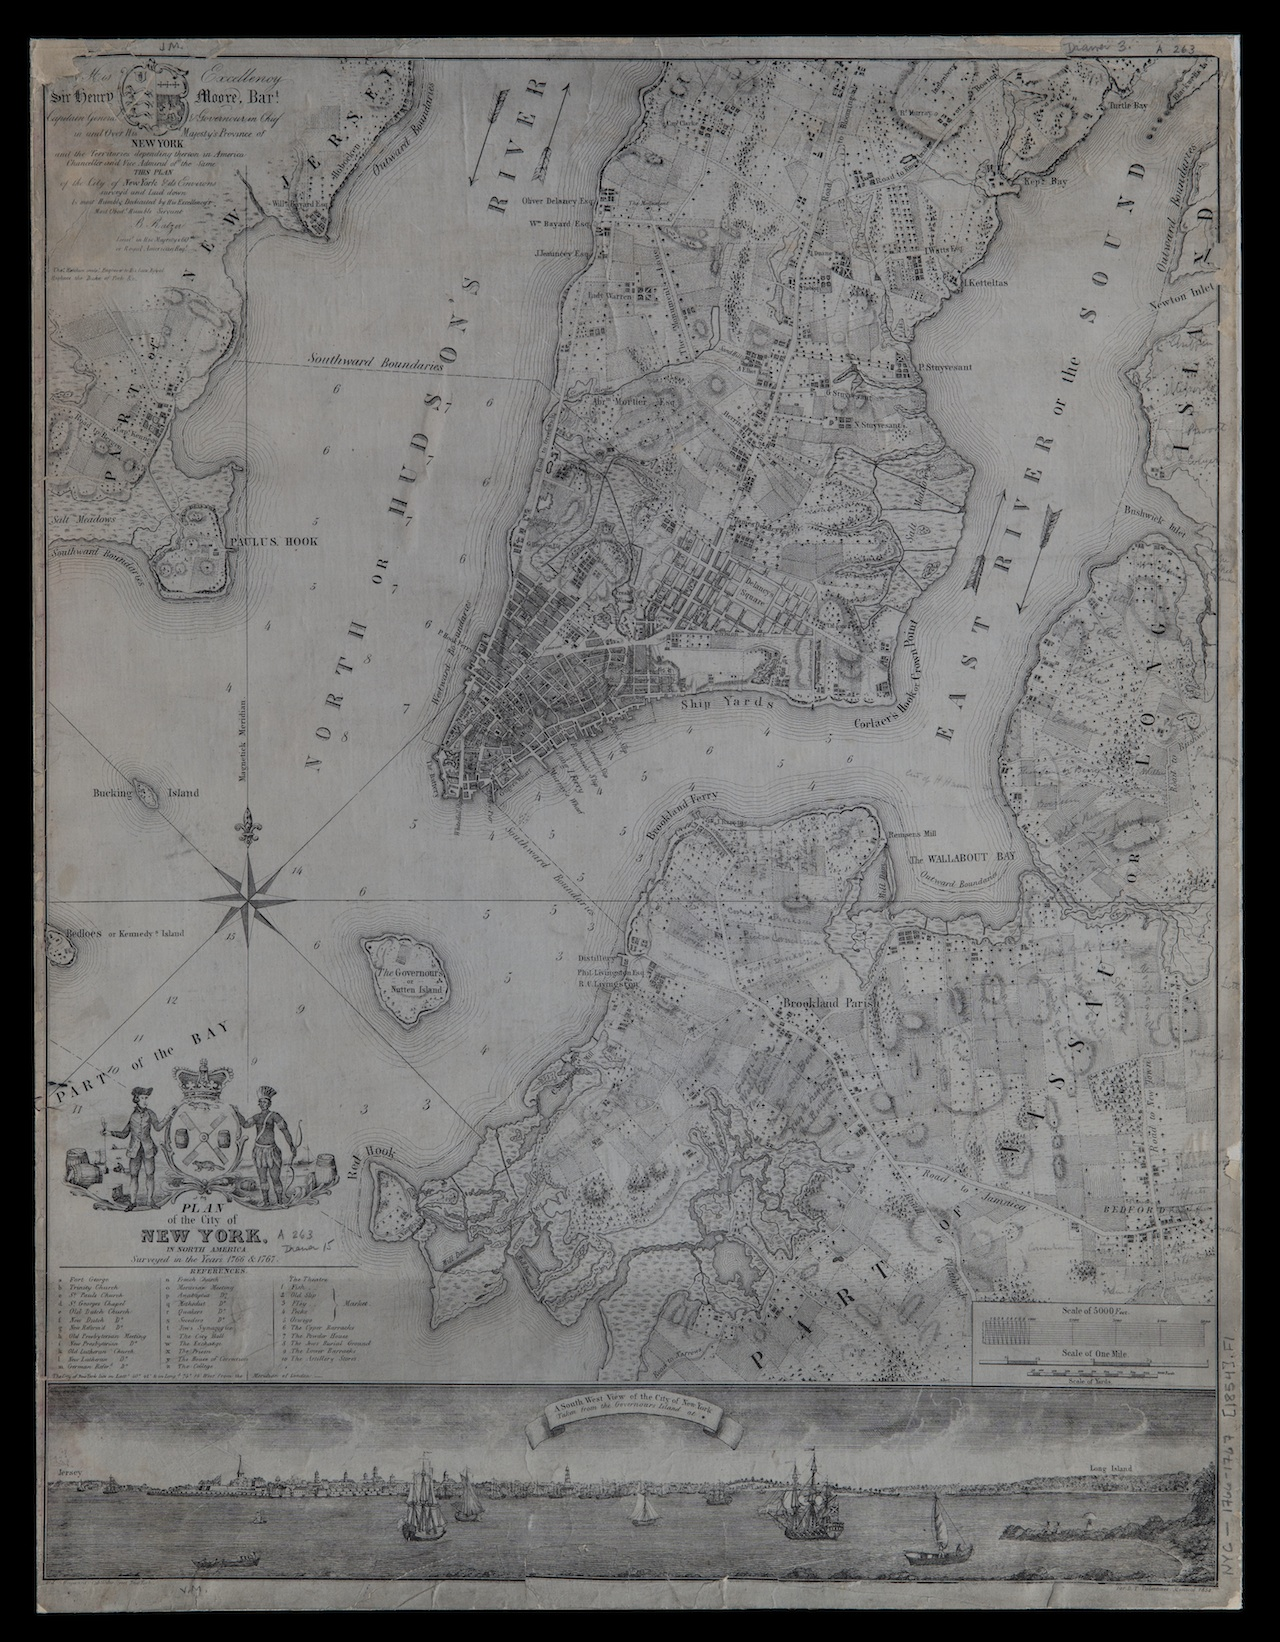 With Bejar: Plan of the City of New York in North America, Surveyed in the Years 1766 & 1767, Bernard Ratzer, Thomas Kitchin, 1854; Flat Maps 1766-1767 (1854).fl; Brooklyn Historical Society.